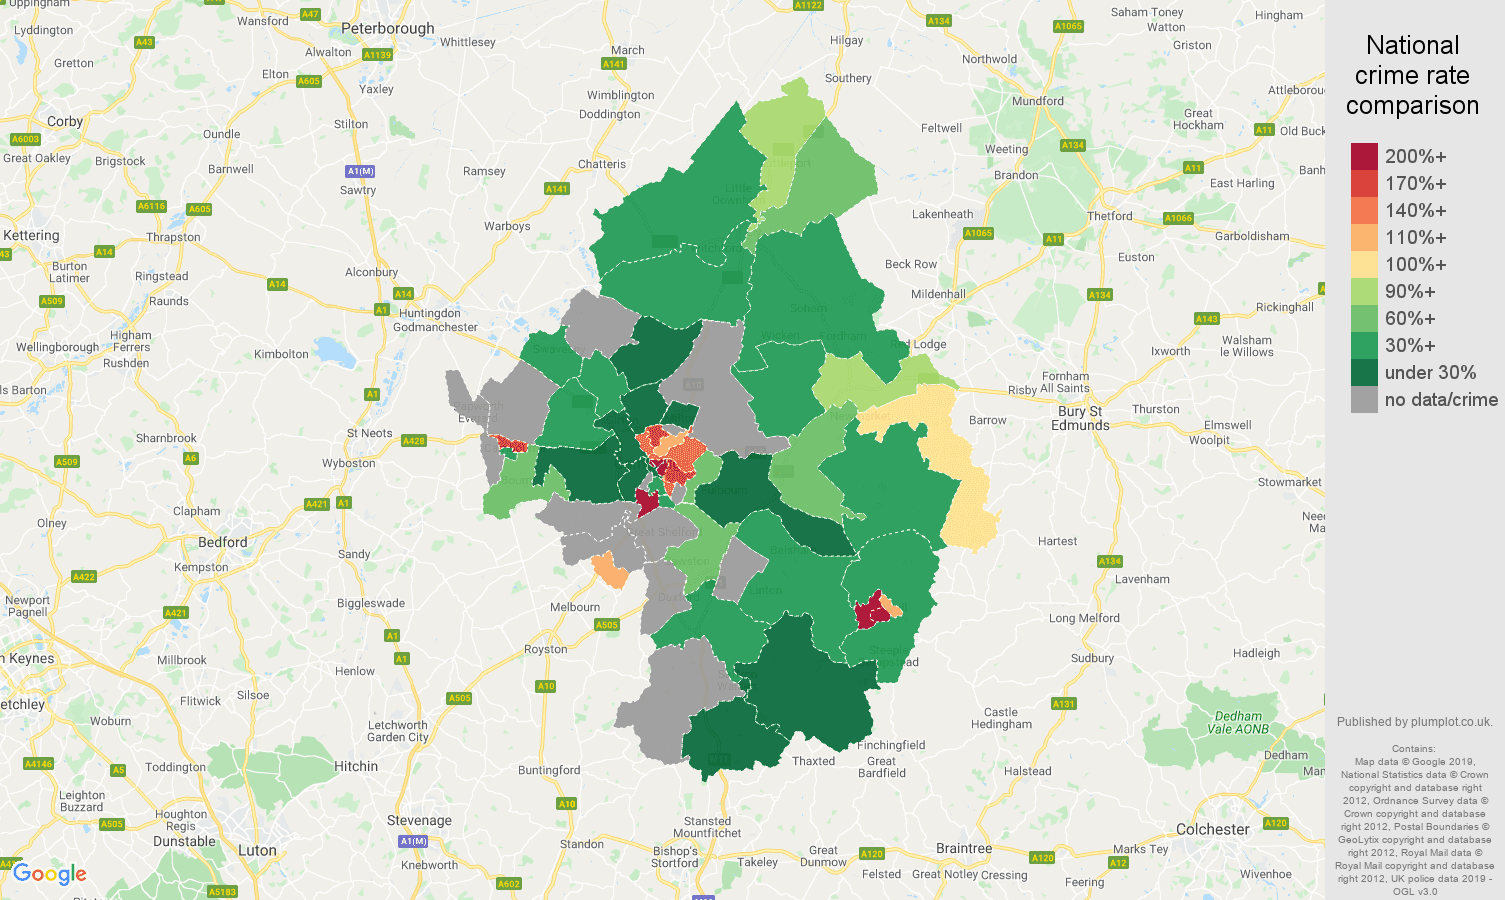 Cambridge possession of weapons crime rate comparison map